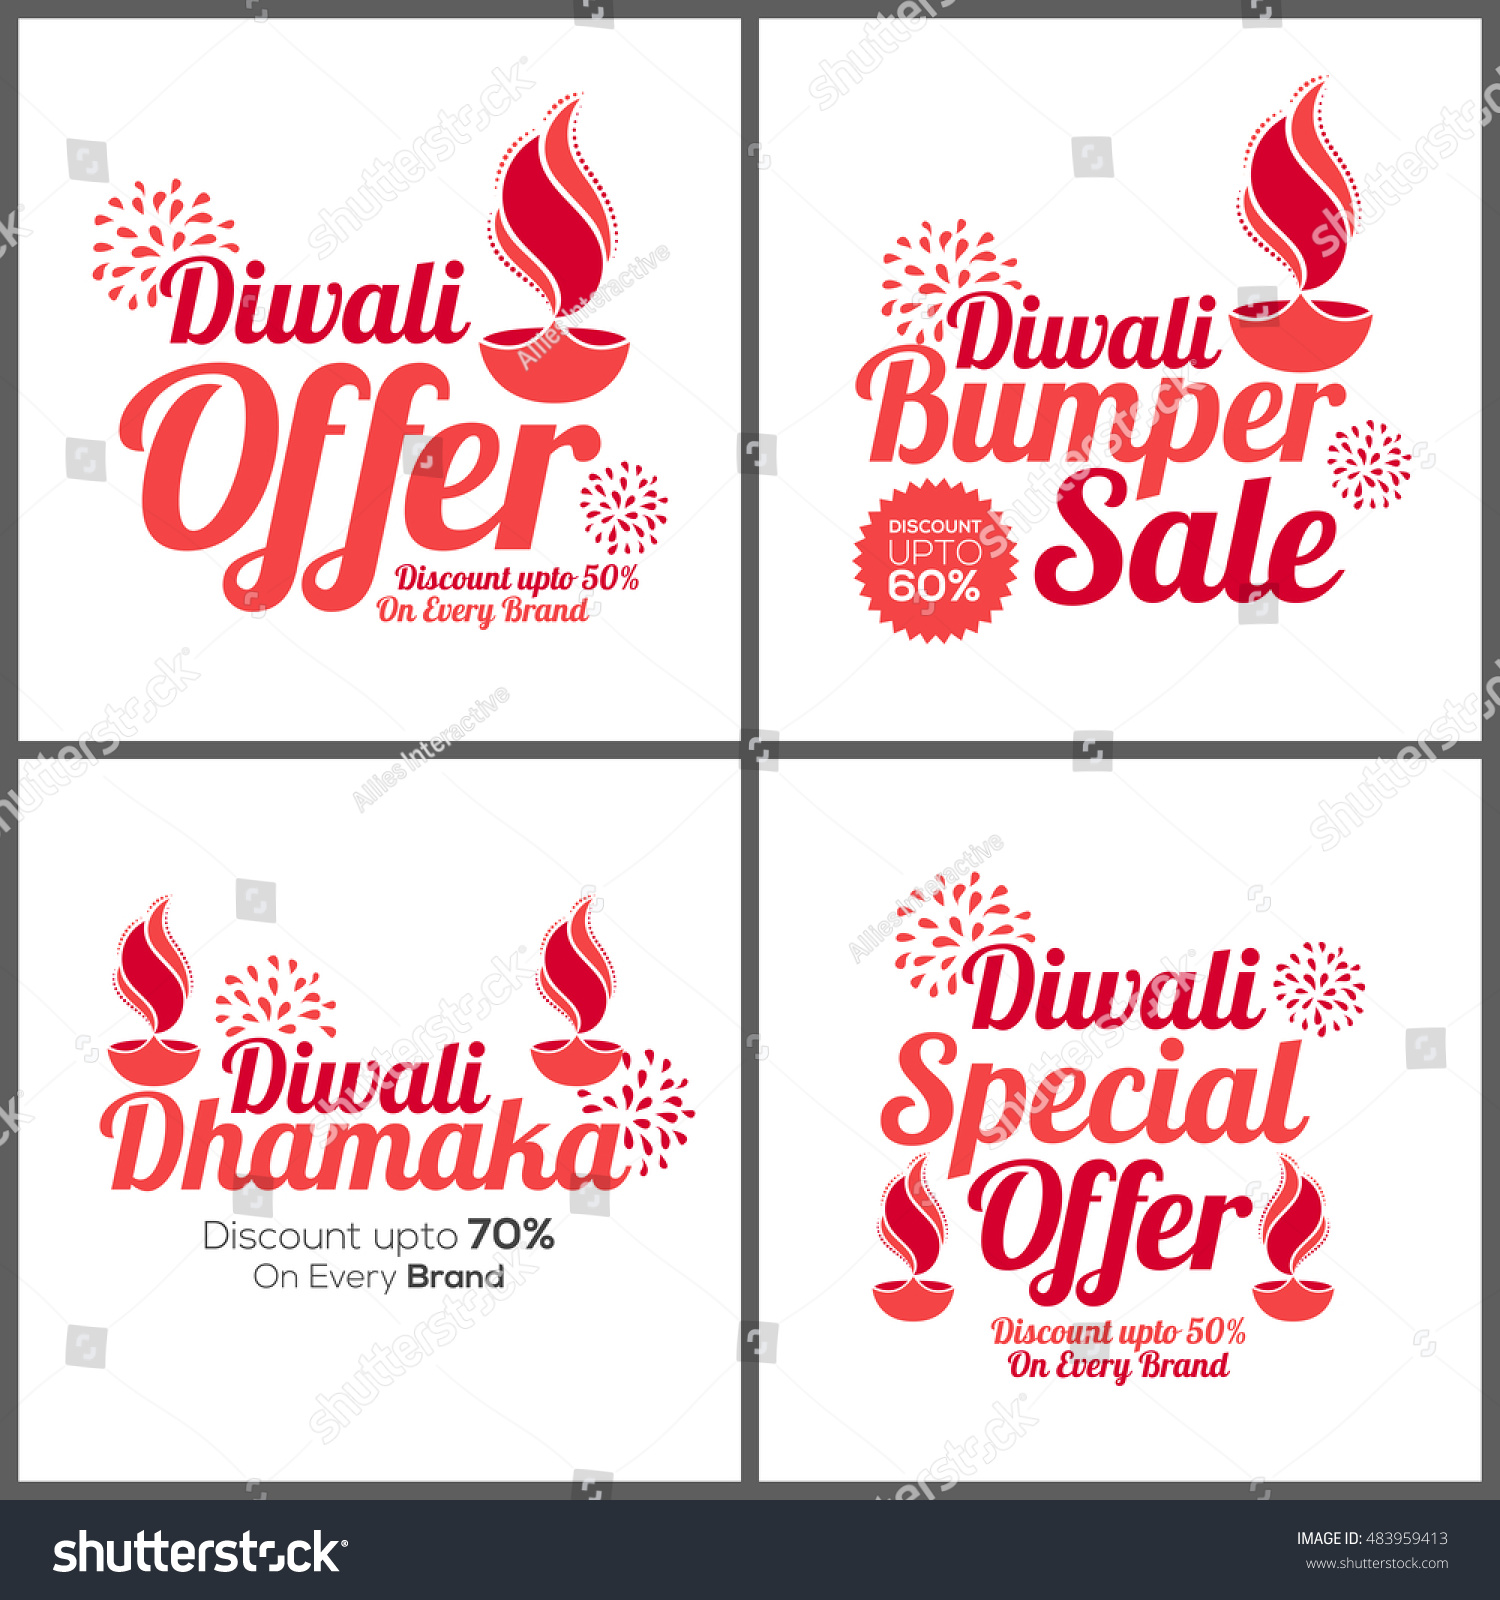 diwali offer poster bumper banner diwali dhamaka flyer save to a lightbox